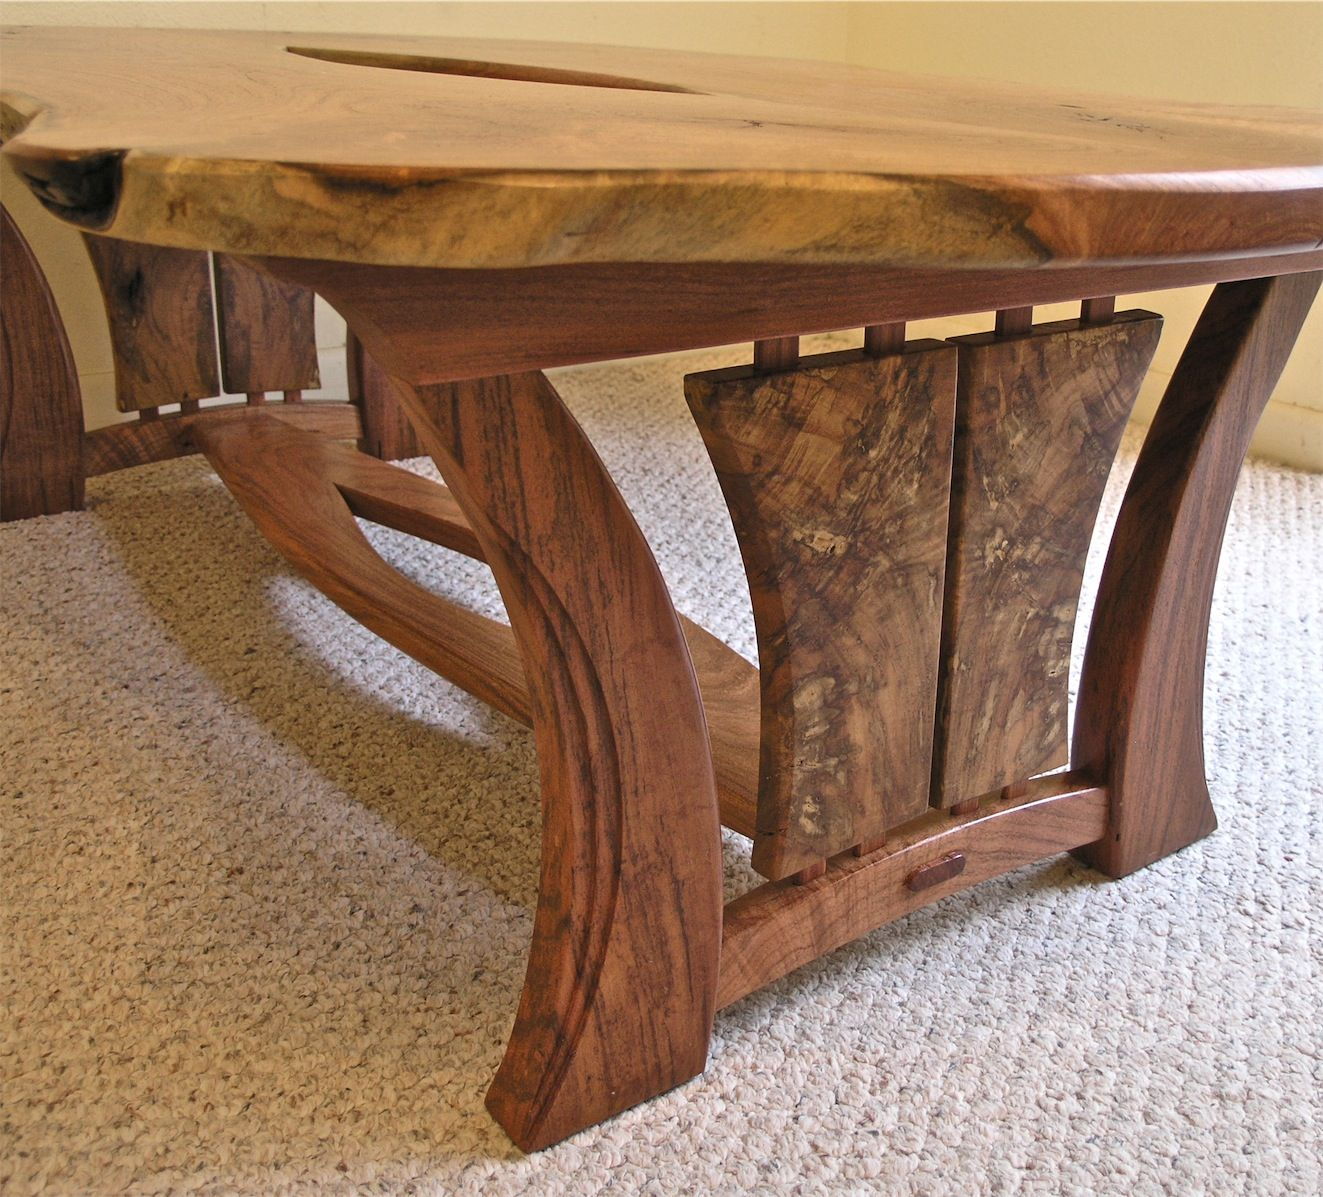 This table is my first completed piece in 2013. It is also